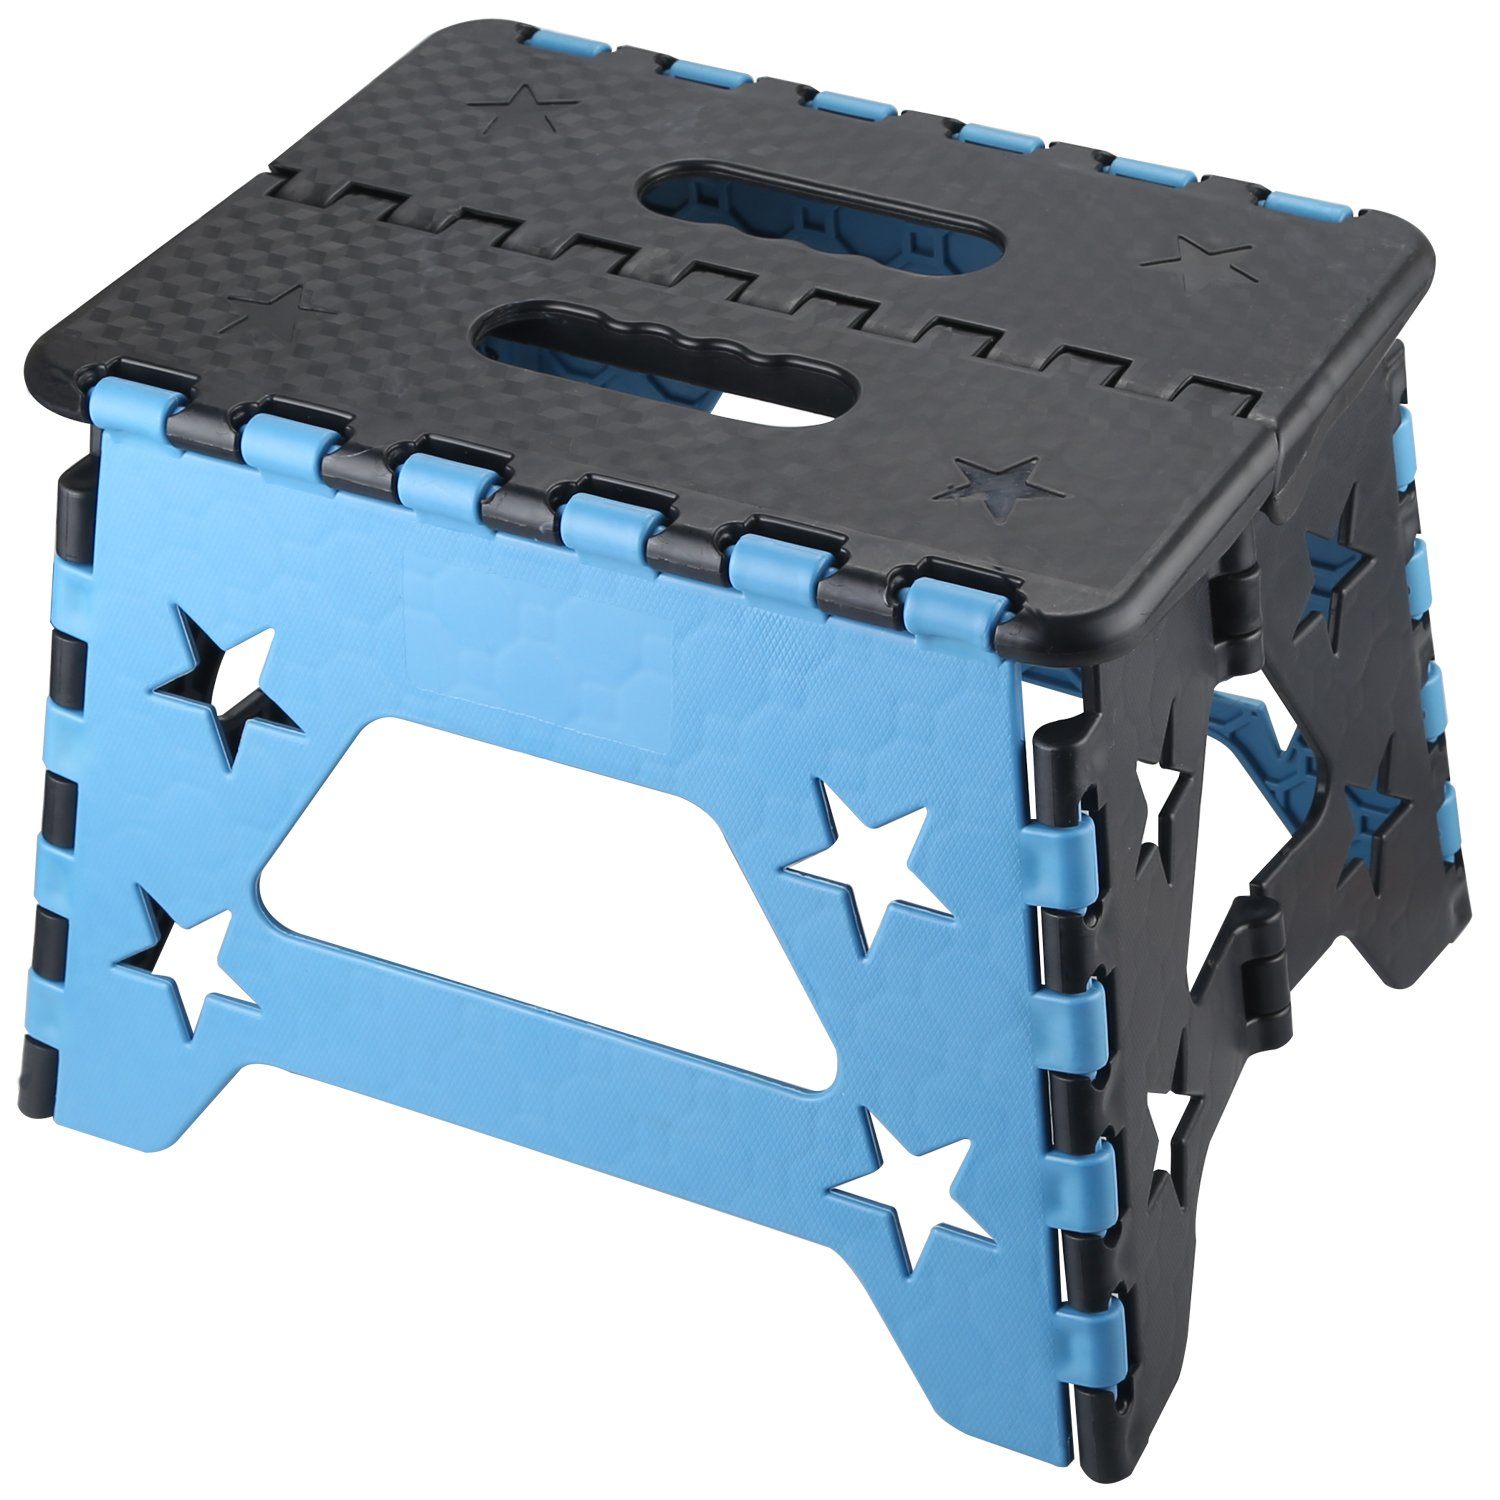 NORZERO Step Stool Folding Step Stool Super Strong Foldable Step Stool for Adults and Kids, Non Slip Kitchen Stepping, Garden Step Stool, Holds up to 260 lbs